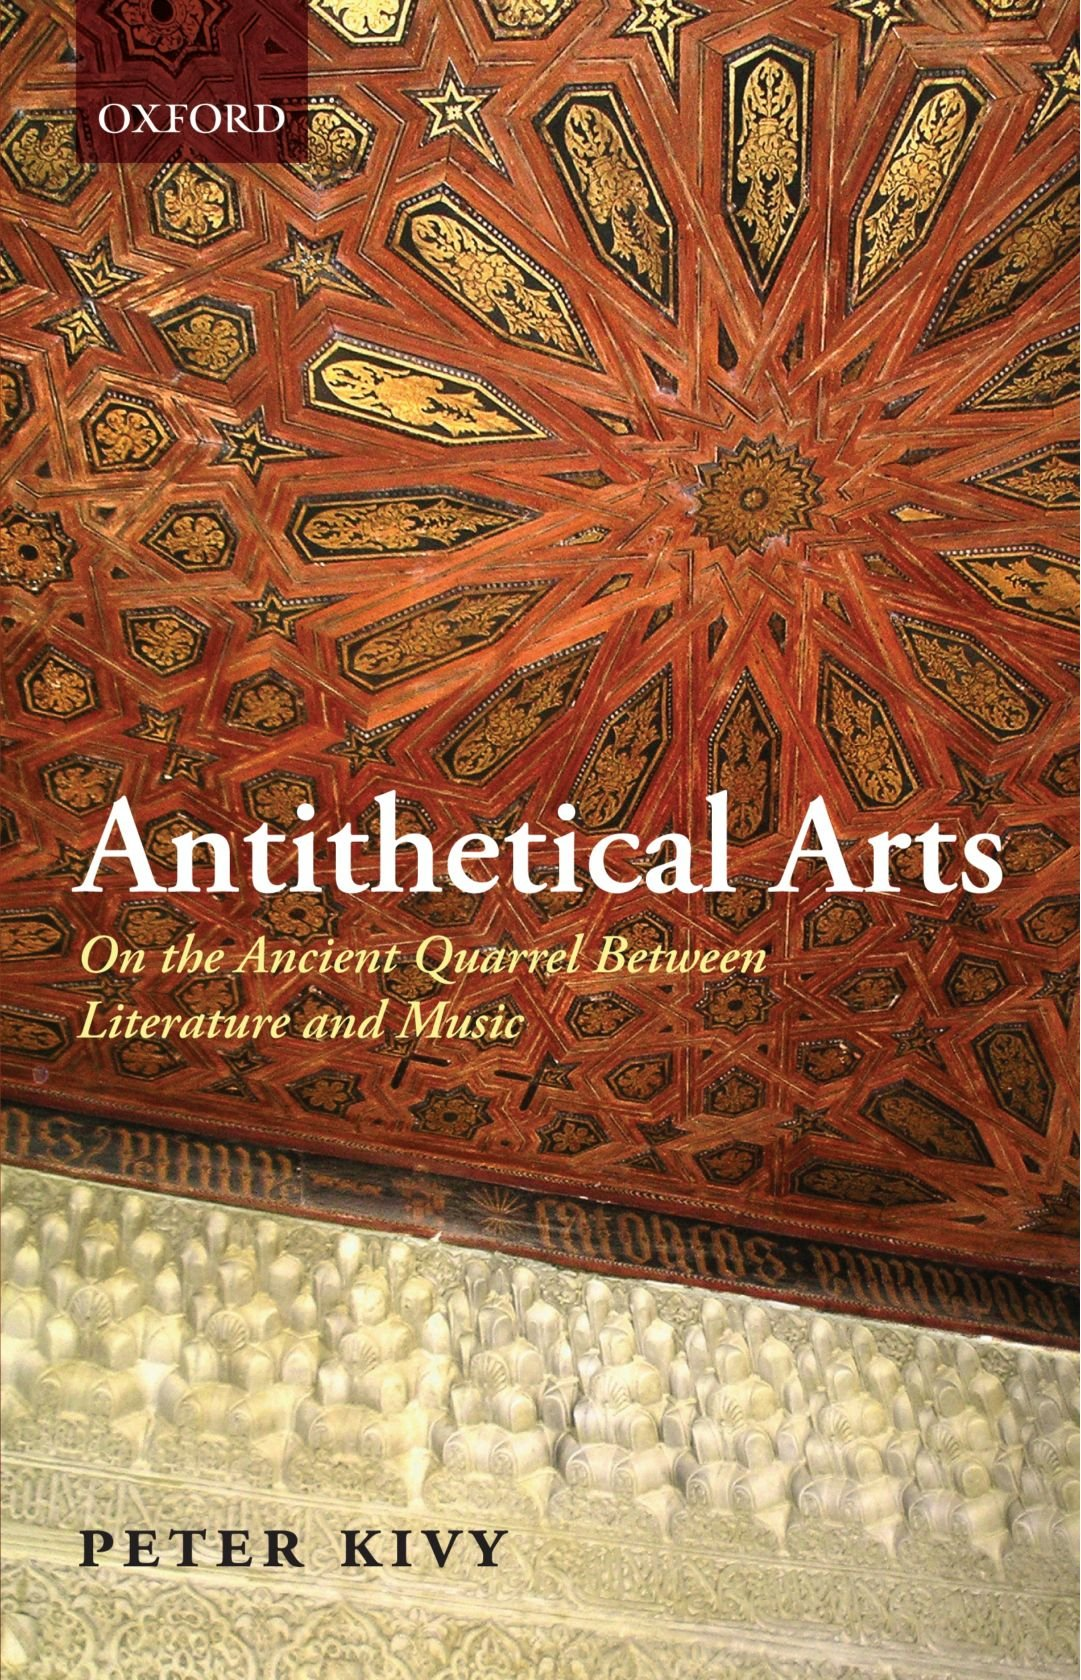 Download Antithetical Arts: On the Ancient Quarrel Between Literature and Music pdf